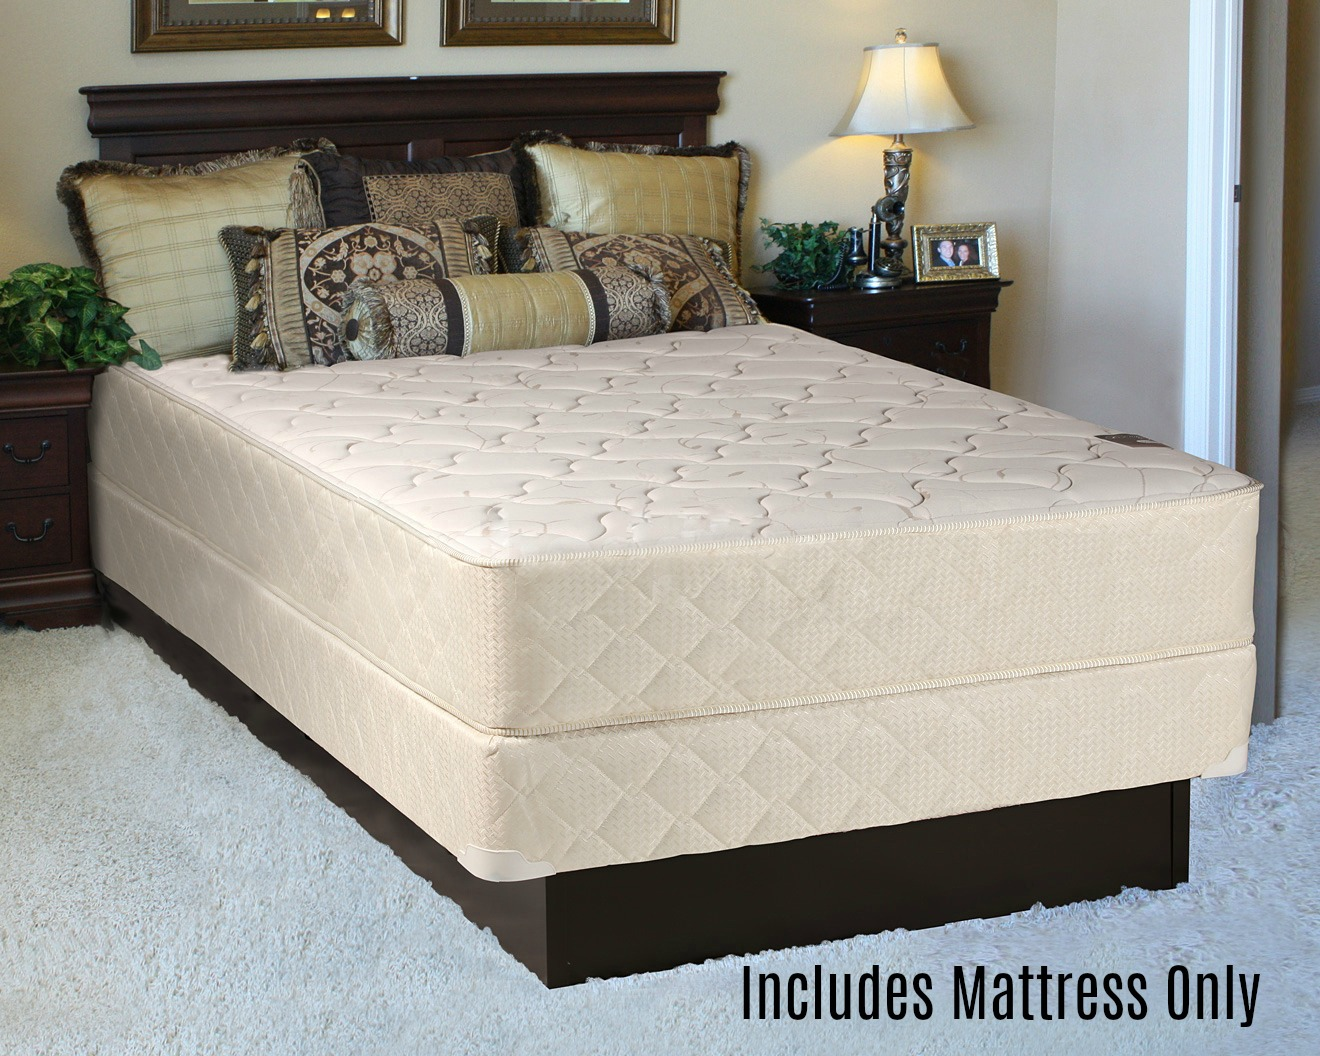 """Spring Solution Fully Assembled Orthopedic Back Support Long Lasting 10"""" Mattress, King by Comfort Bedding"""